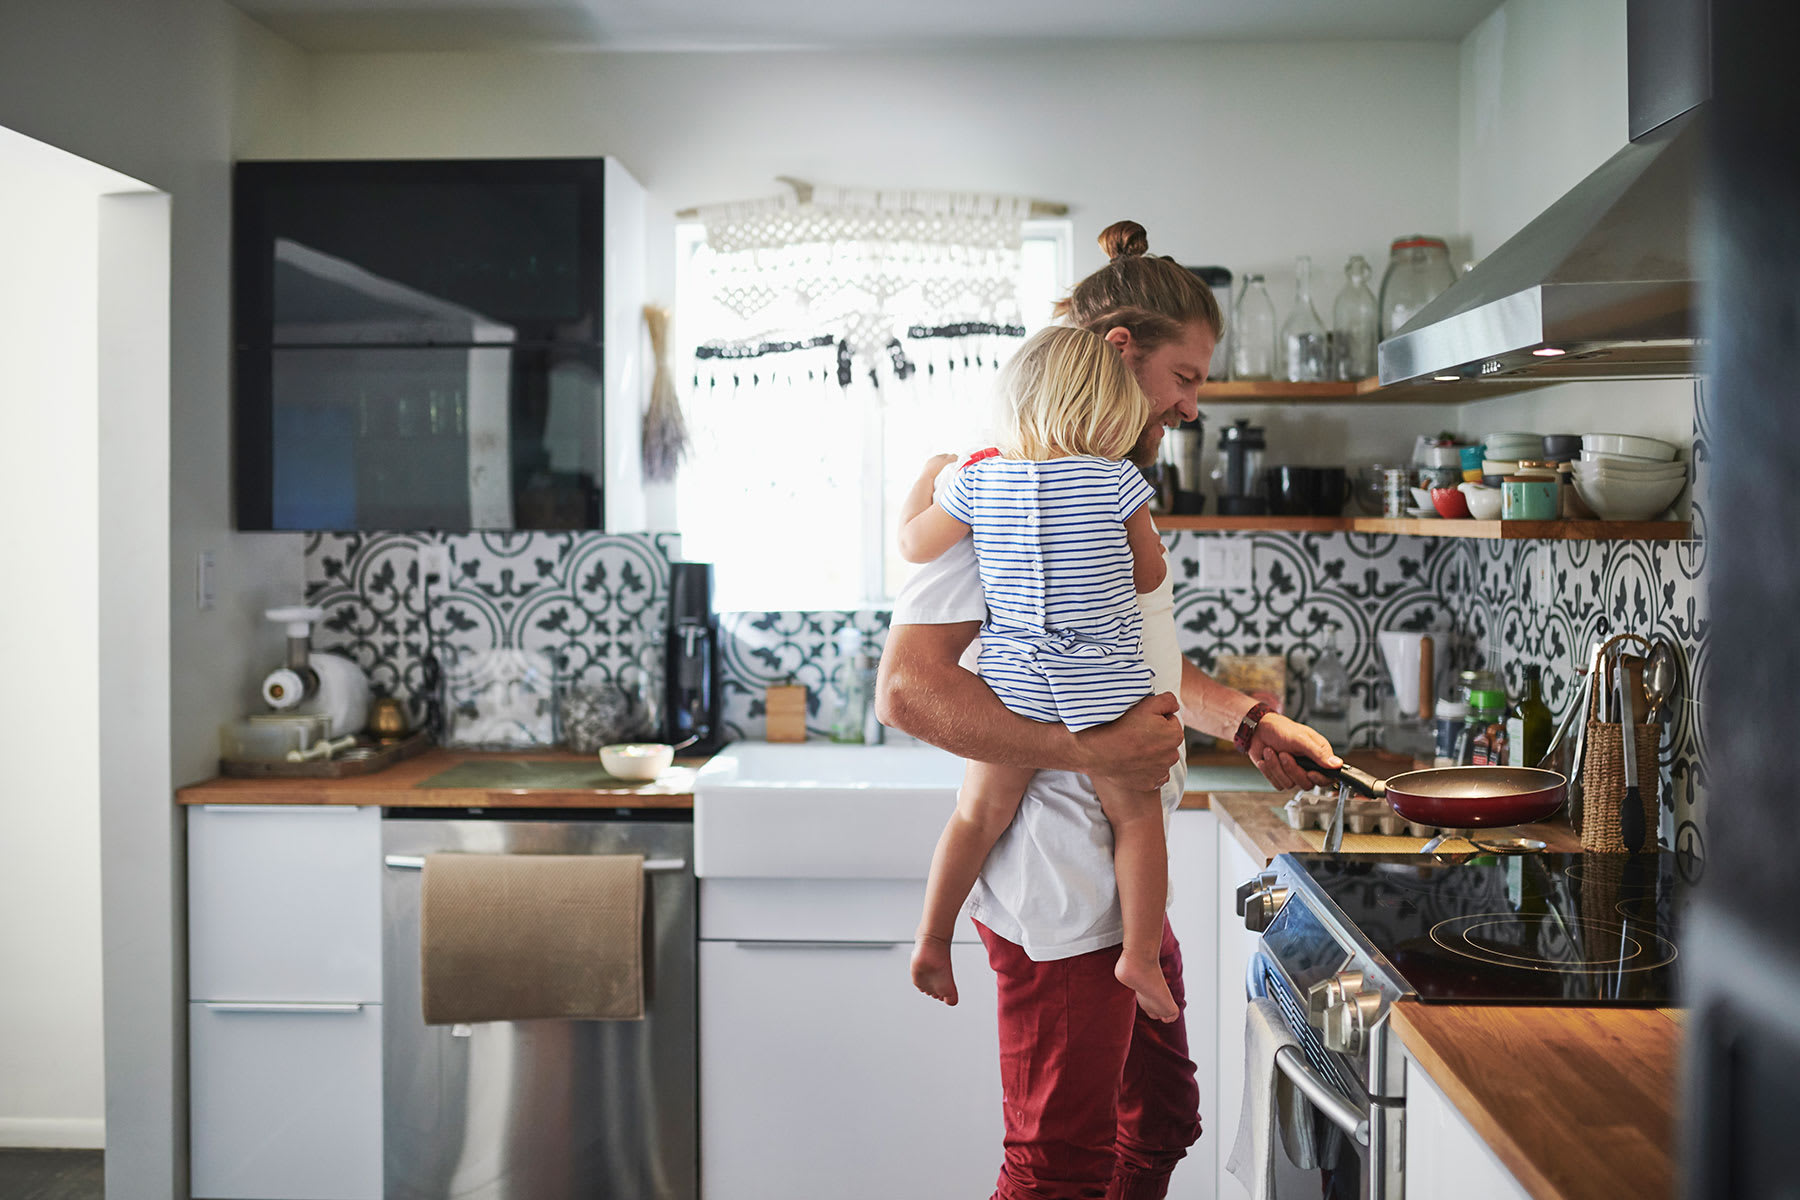 Father holding his daughter in the kitchen while cooking on an induction stovetop.